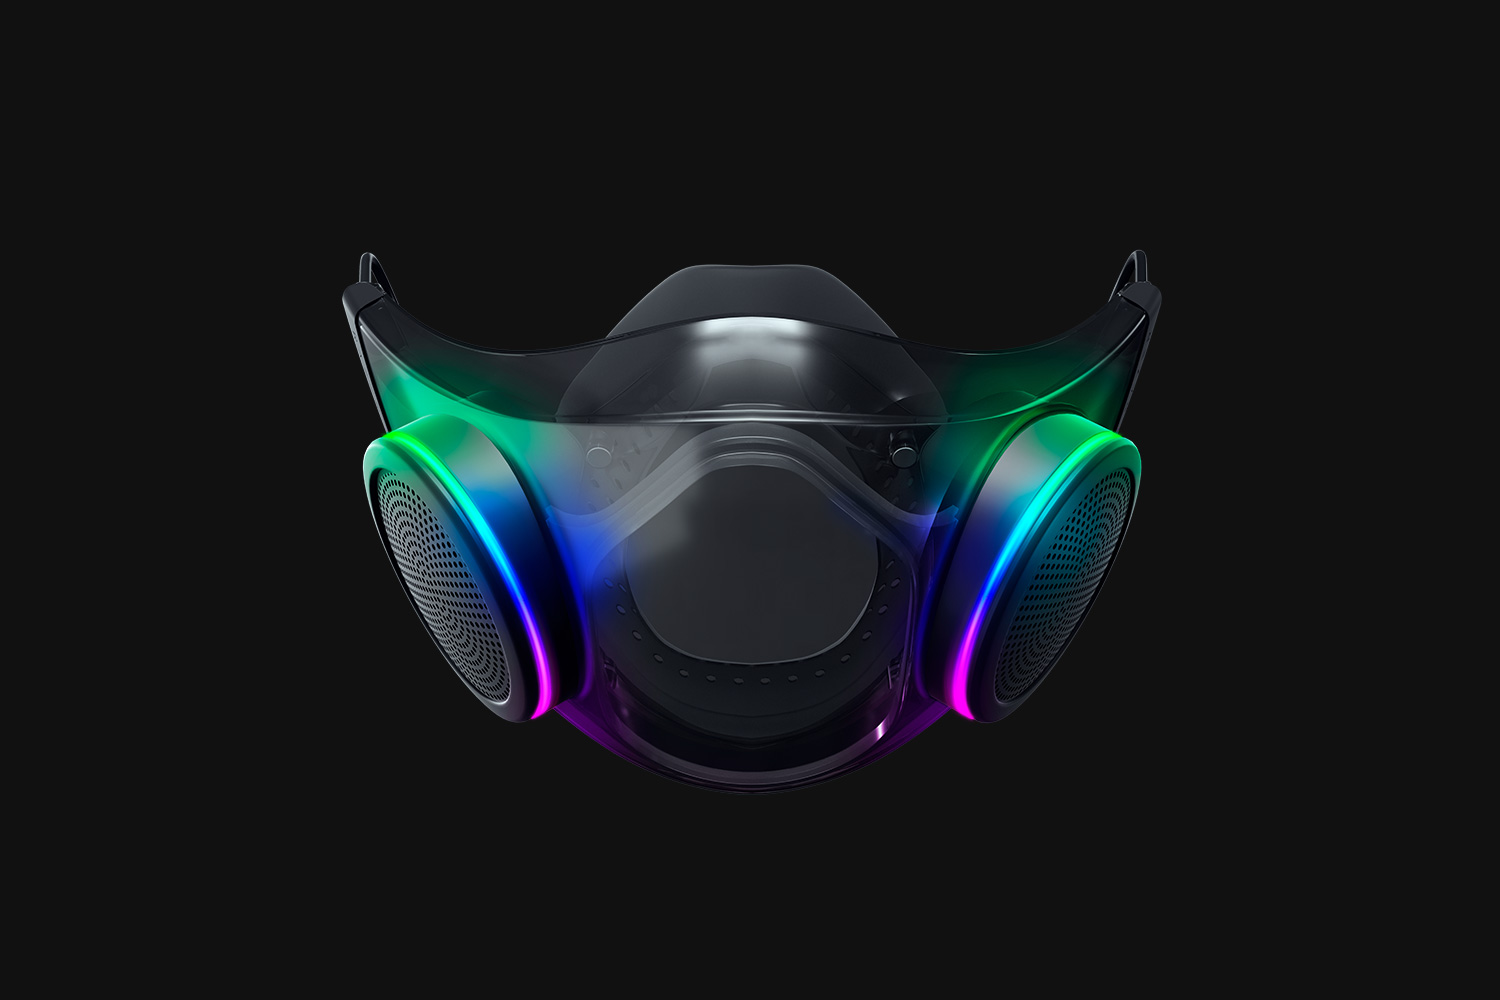 Razer plans to sell glowing Gamer masks for a limited time later this year